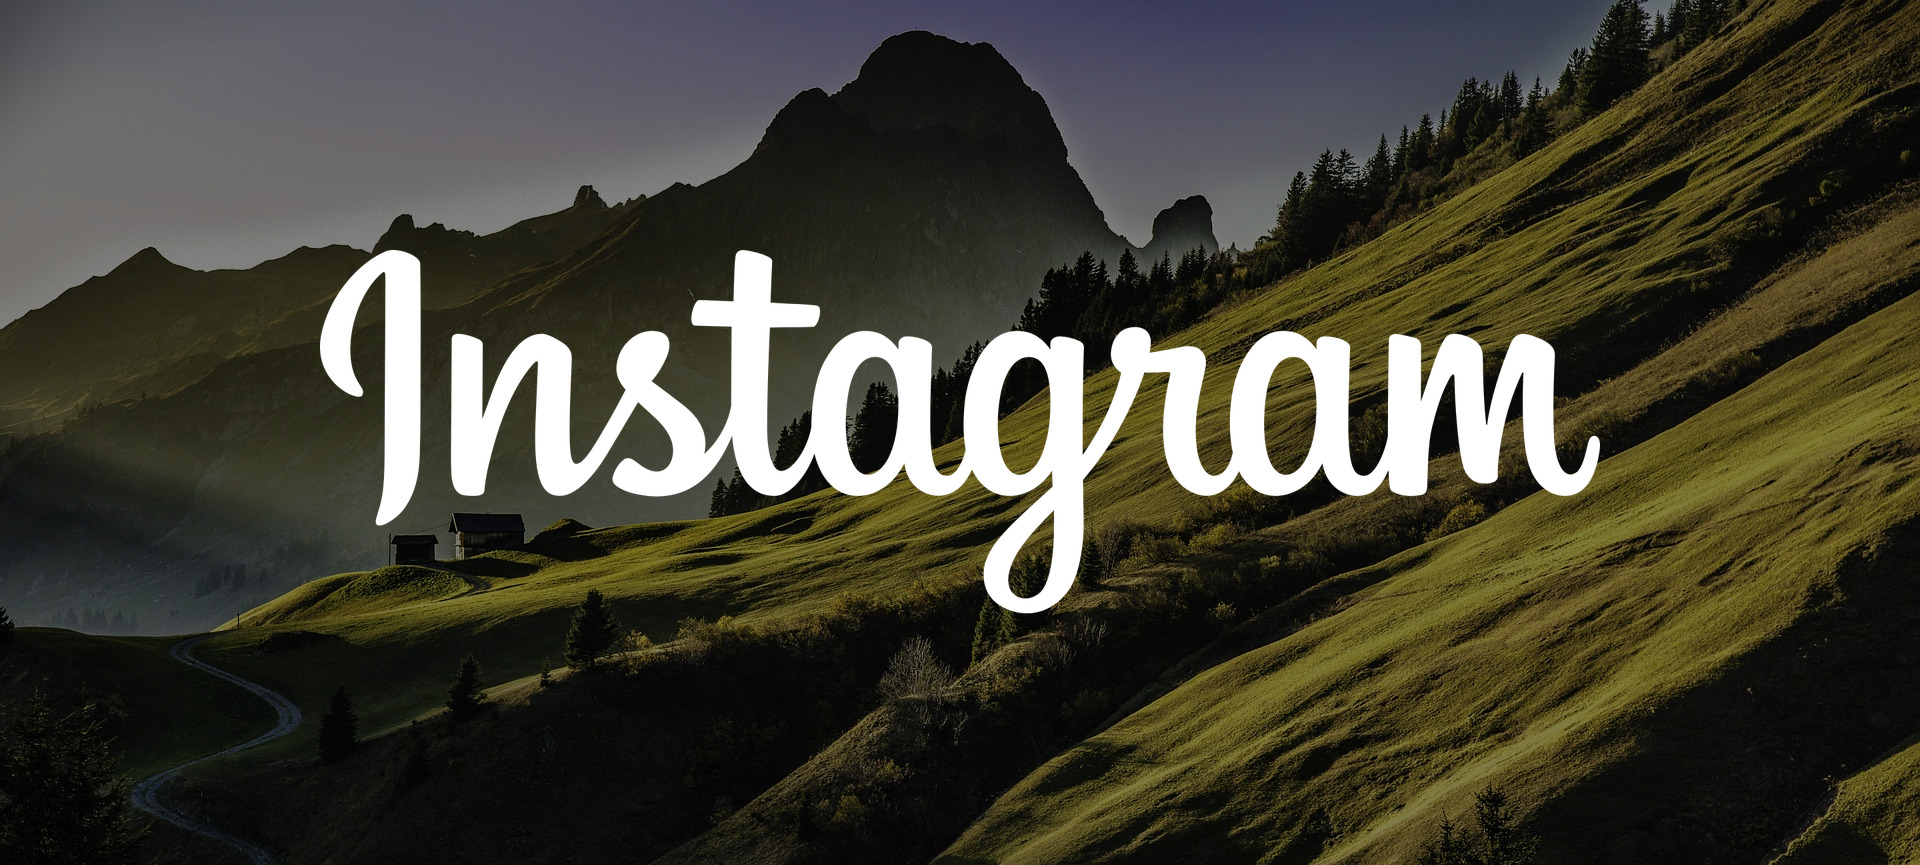 nstagram is Changing the Way People Travel